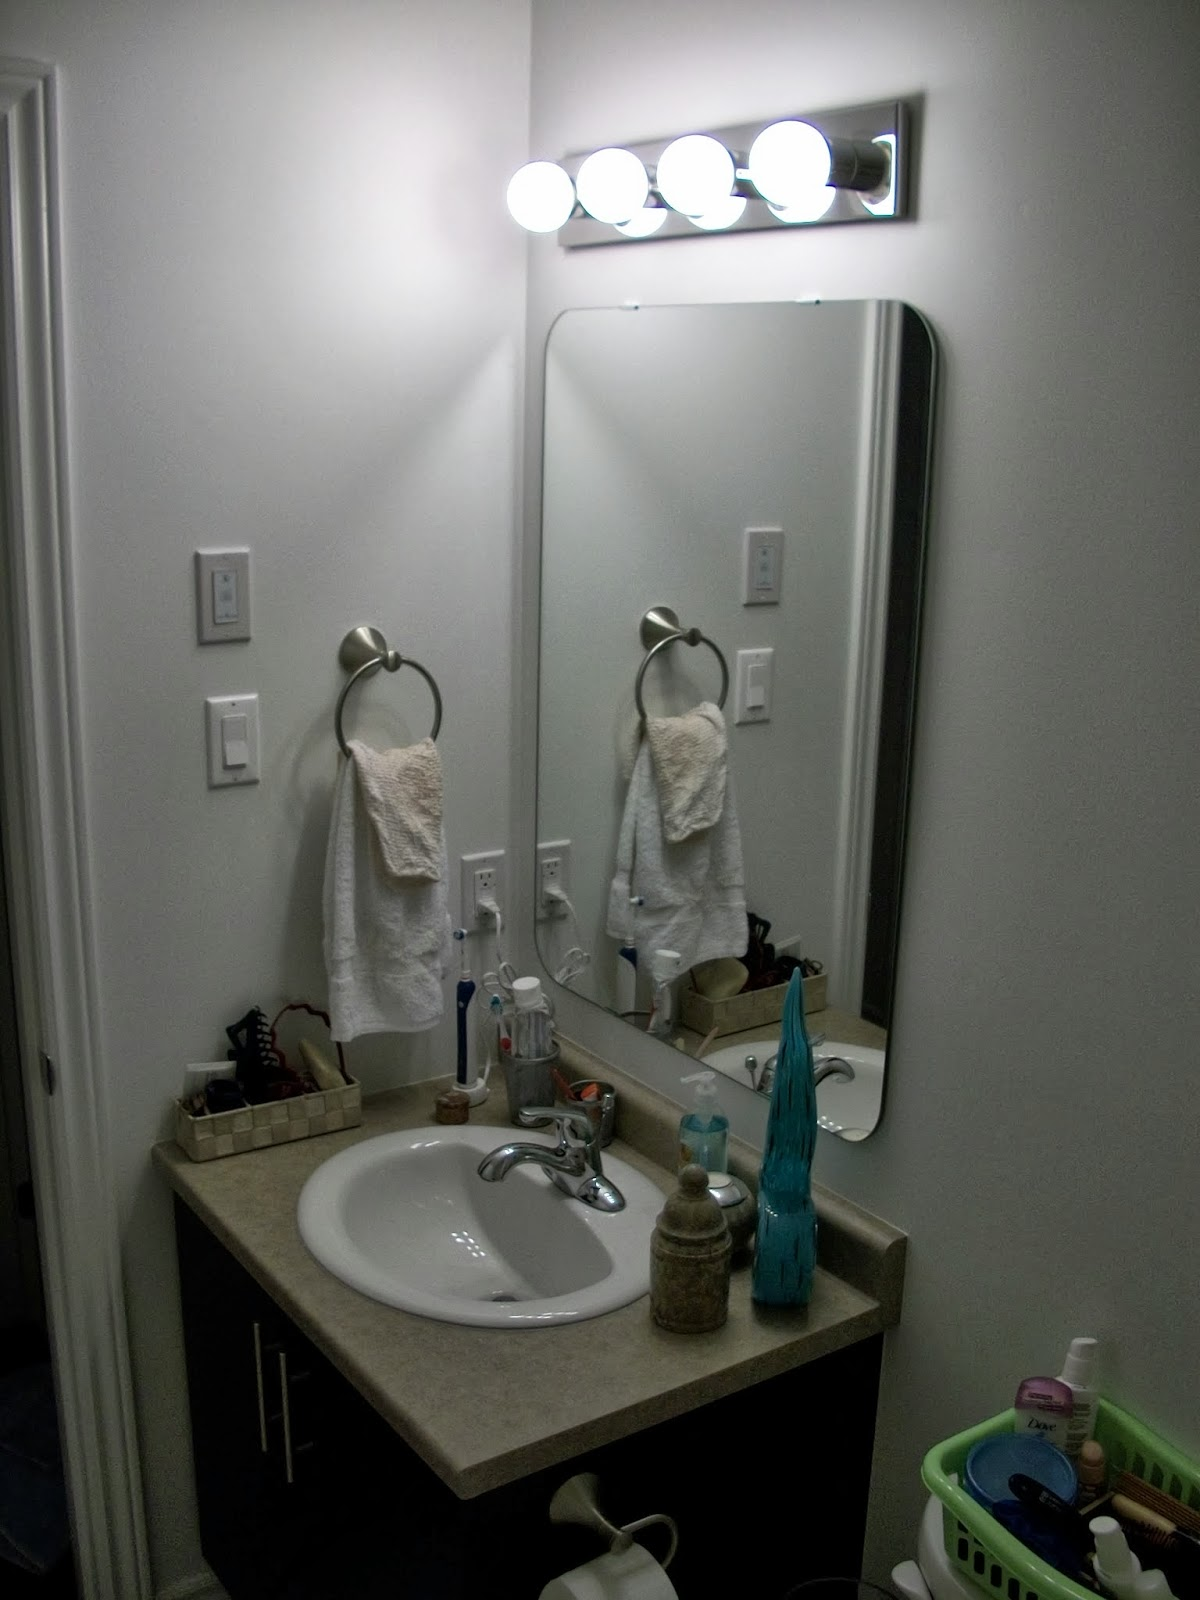 I Wanted To Quickly Share With You My New Light Fixture For Bathroom If Remember When Moved In The Vanity Featured A Nice Hollywood Glam Style